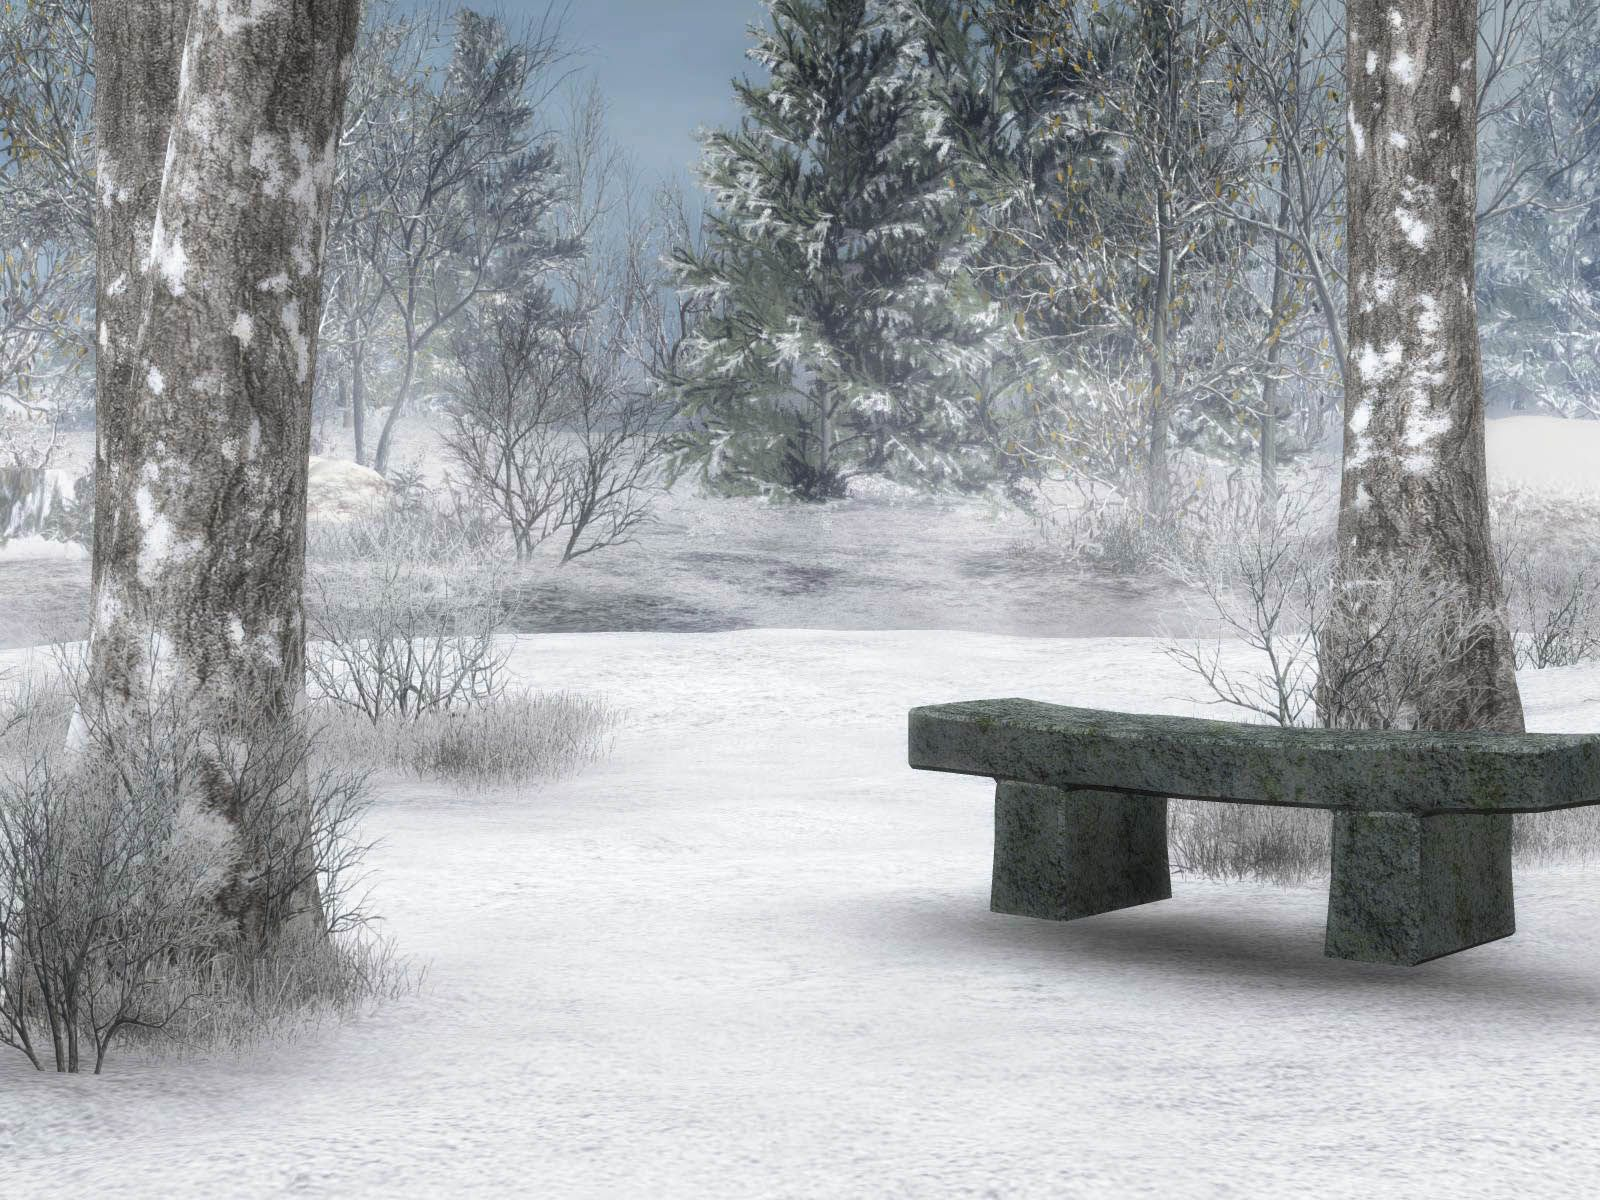 Free Screensavers Download Saversplanet Com Winter Background Free Winter Wallpaper Winter Desktop Background